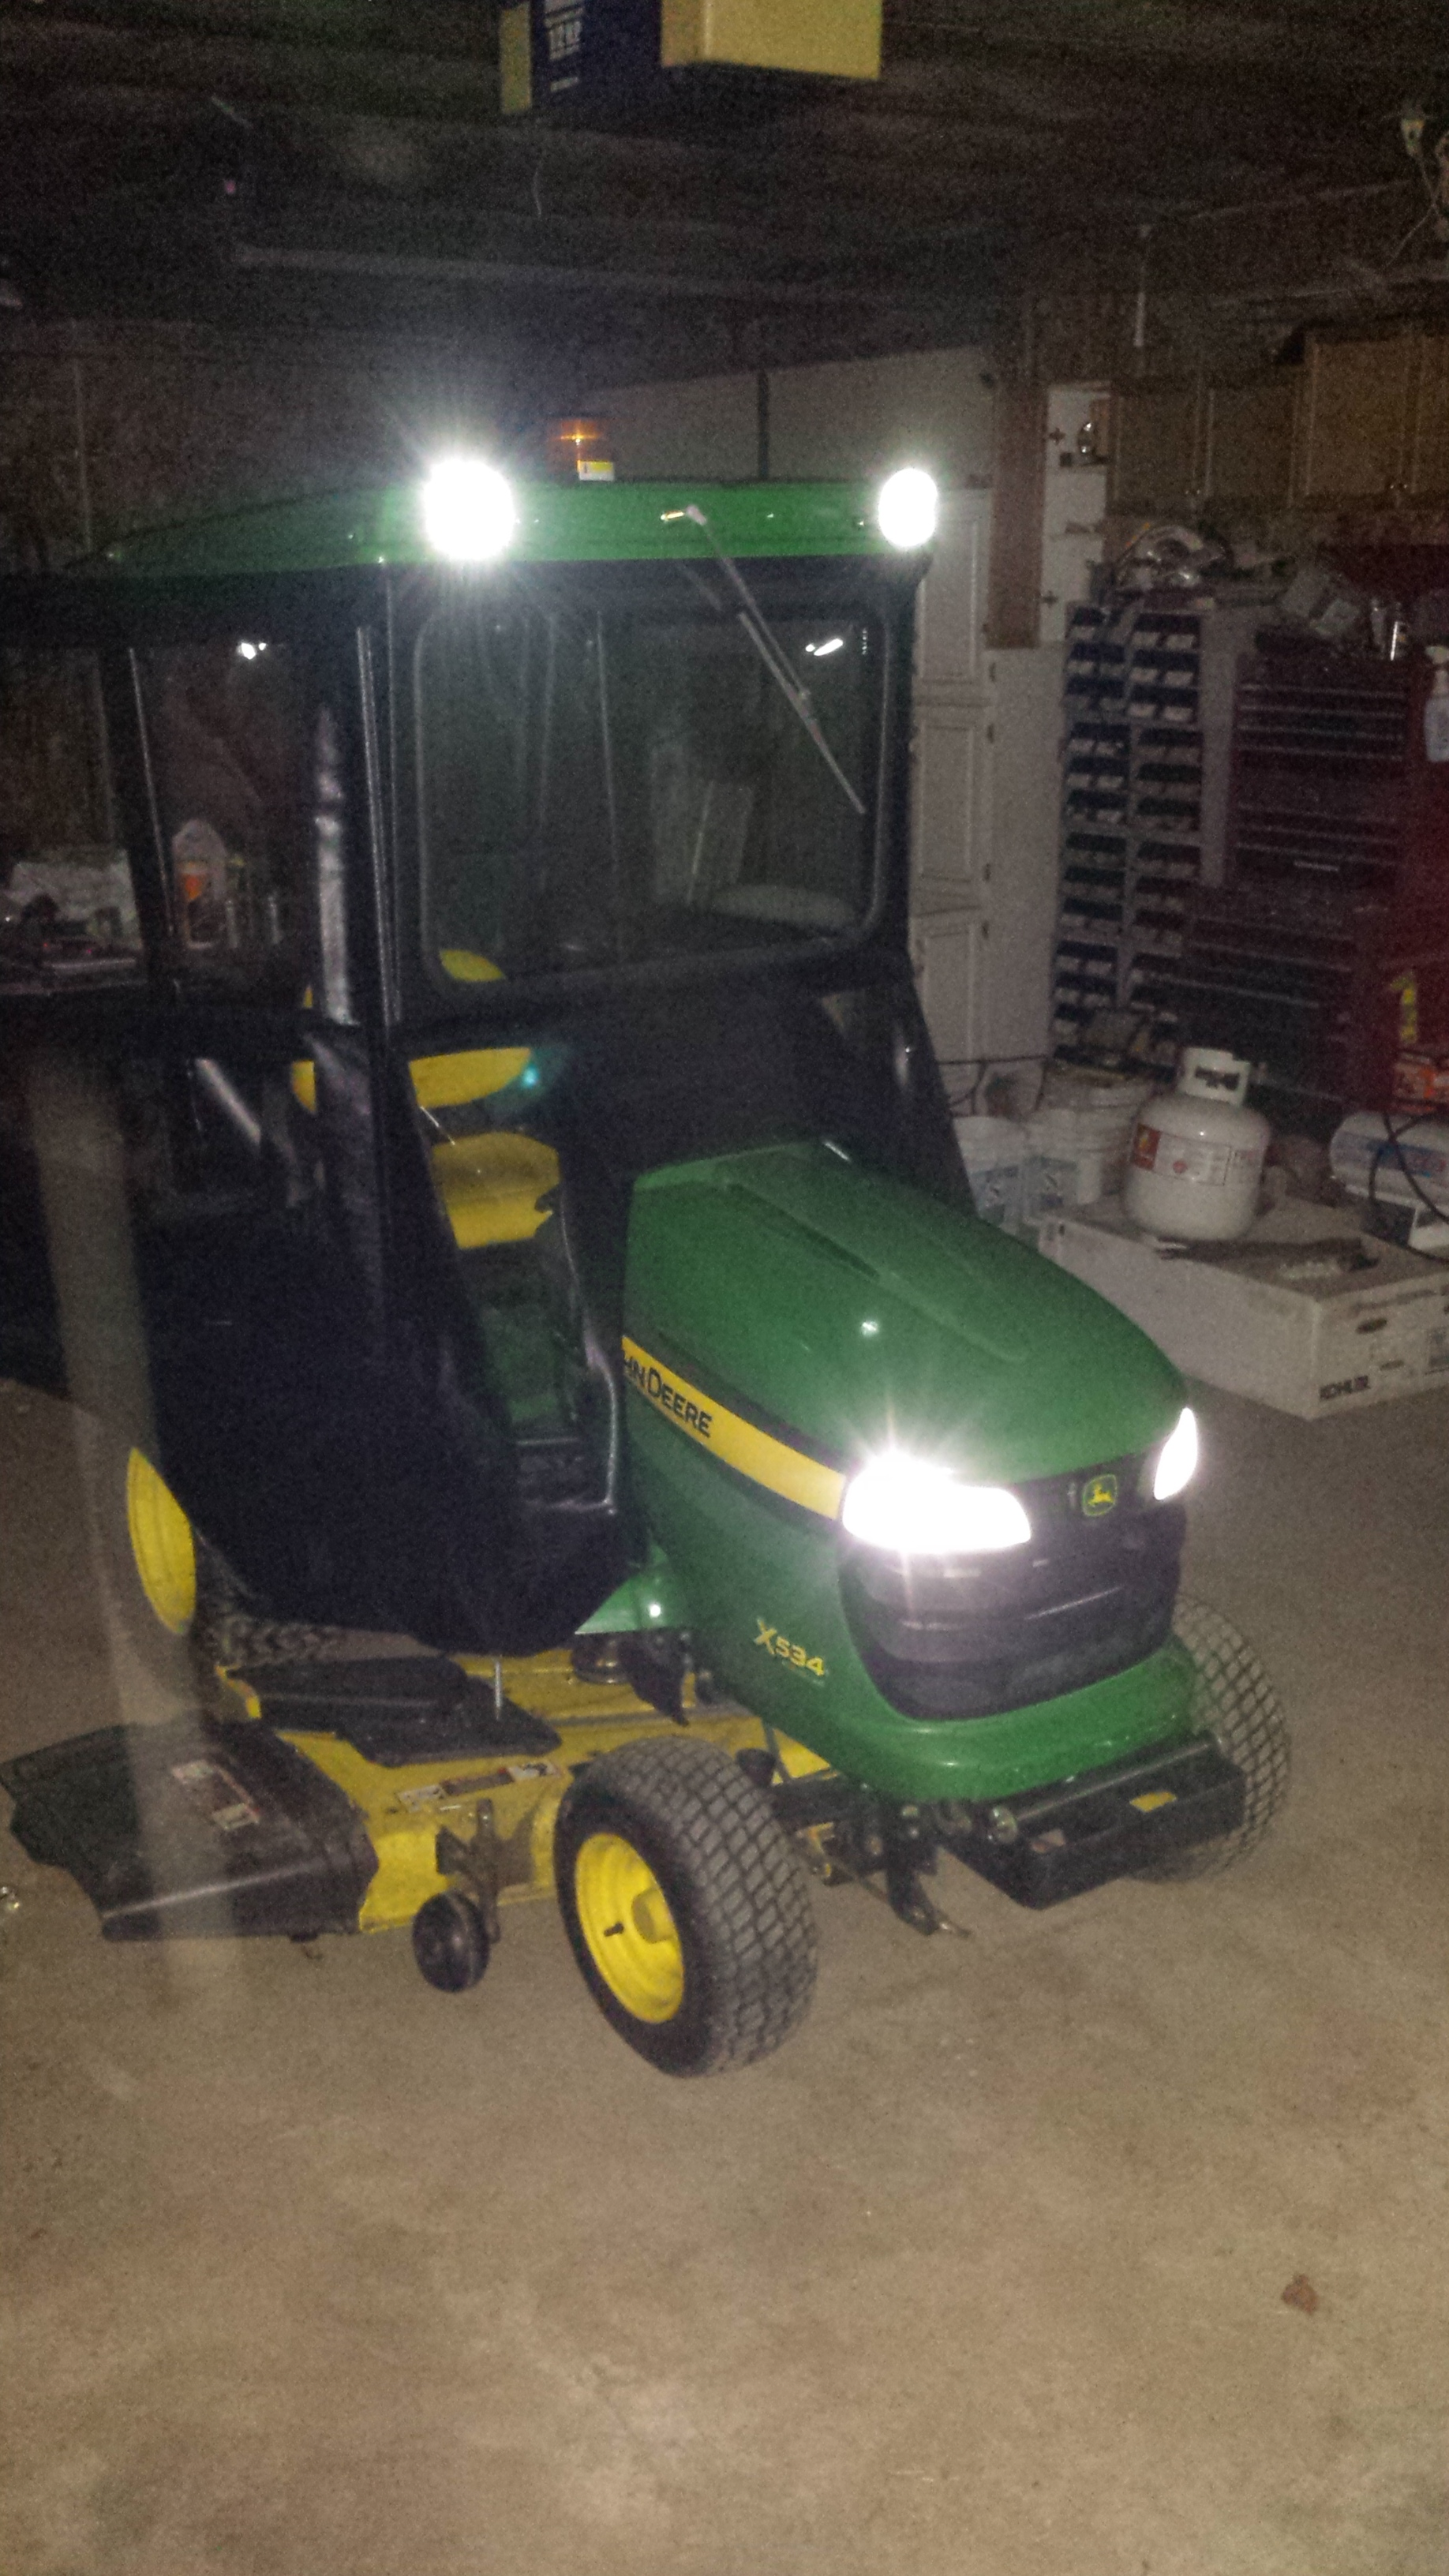 X534 Ready for Winter | My Tractor Forum on x485 john deere wiring diagram, z225 john deere wiring diagram, sst15 john deere wiring diagram, lt180 john deere wiring diagram, lx277 john deere wiring diagram, z425 john deere wiring diagram, lx178 john deere wiring diagram, x465 john deere wiring diagram,